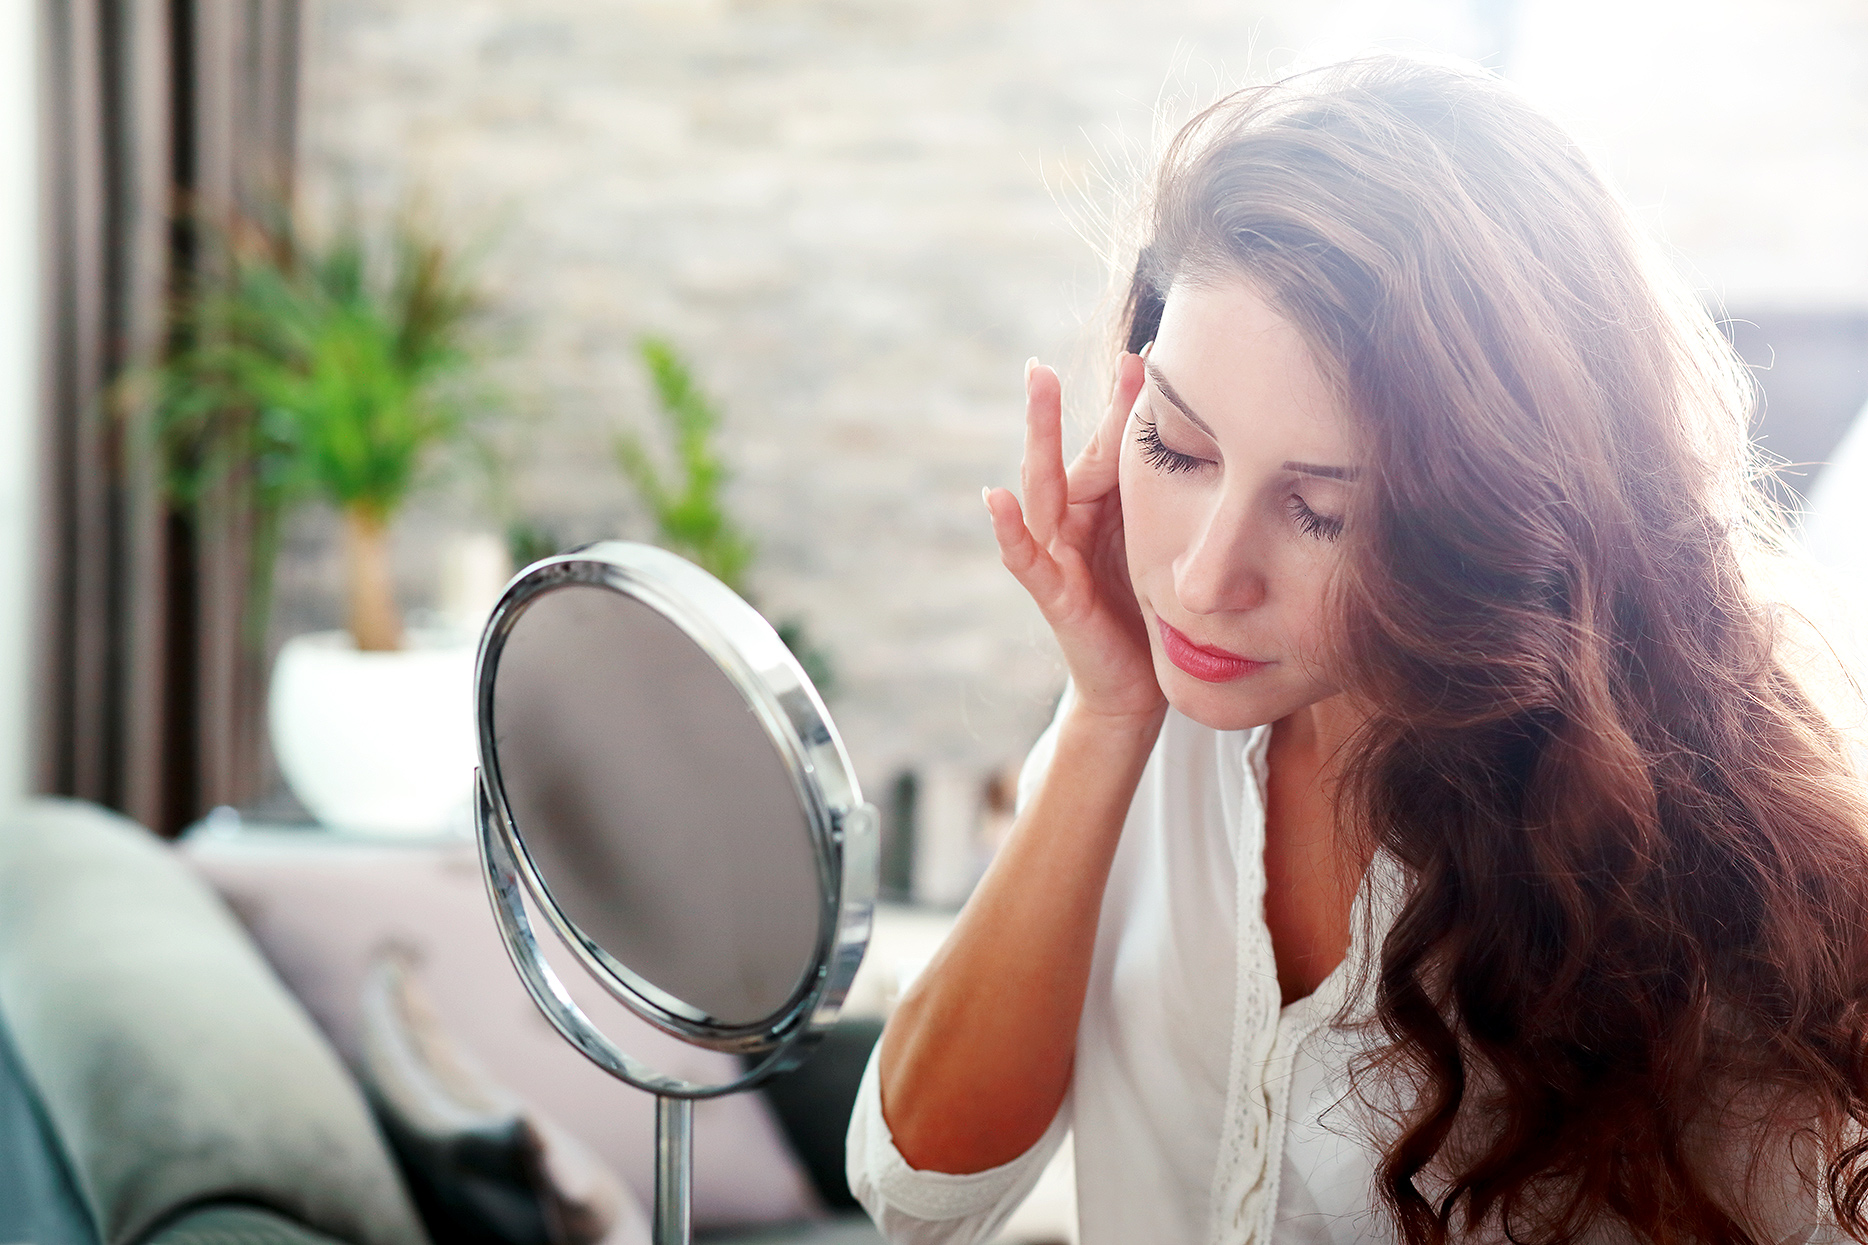 brunette woman touching face and looking into mirror